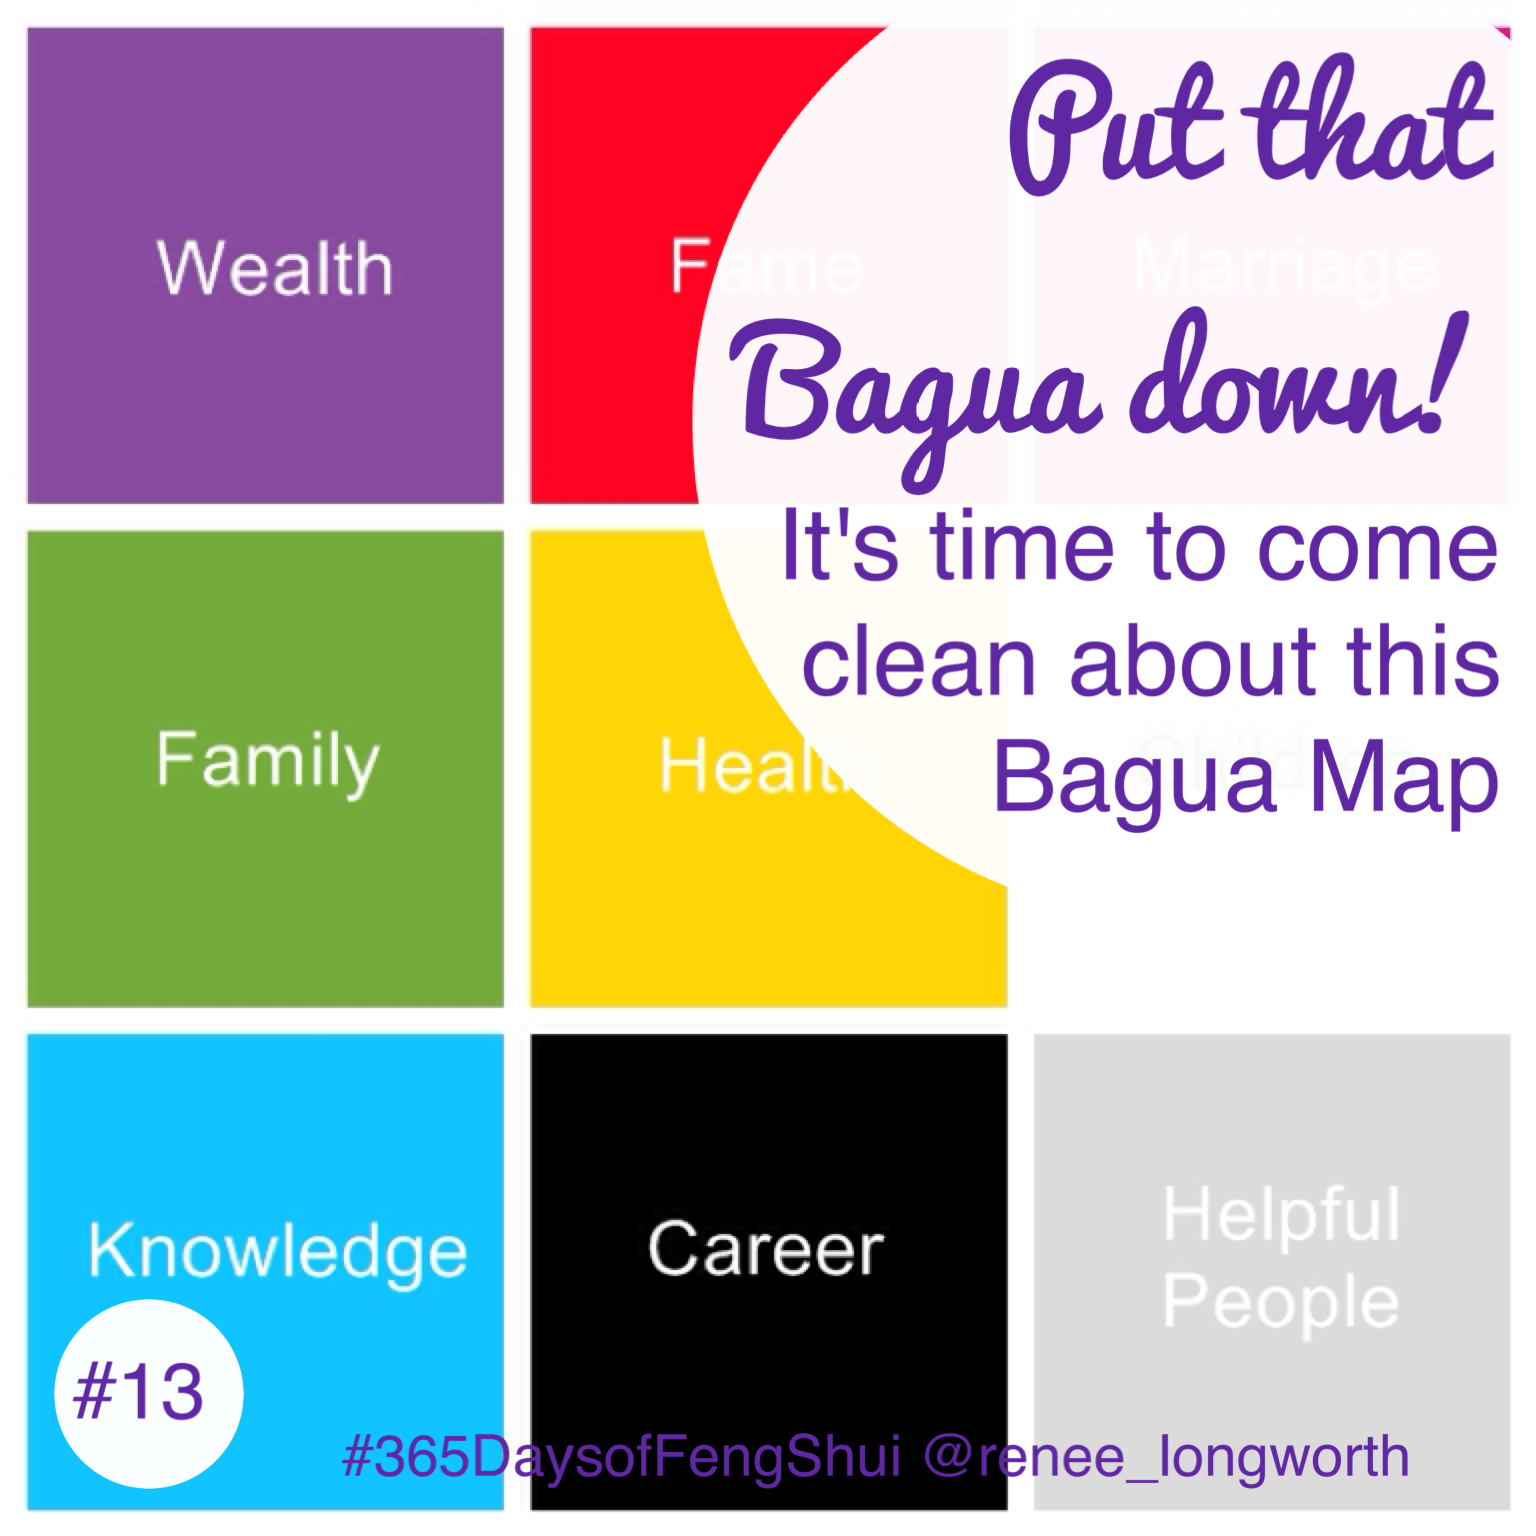 . put that bagua map down and step away slowly